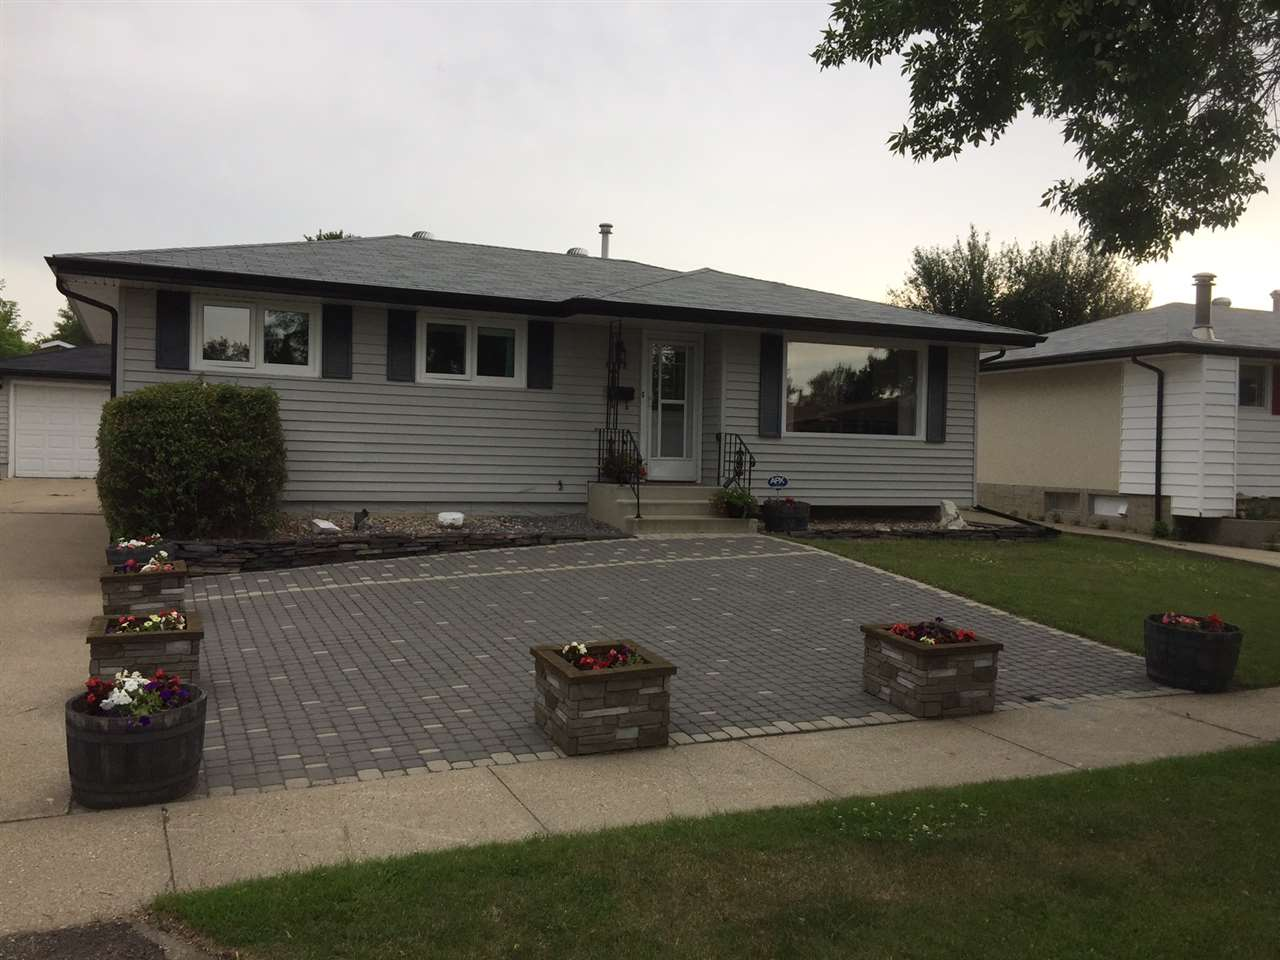 Main Photo: 6012 148 Avenue in Edmonton: Zone 02 House for sale : MLS(r) # E4072931